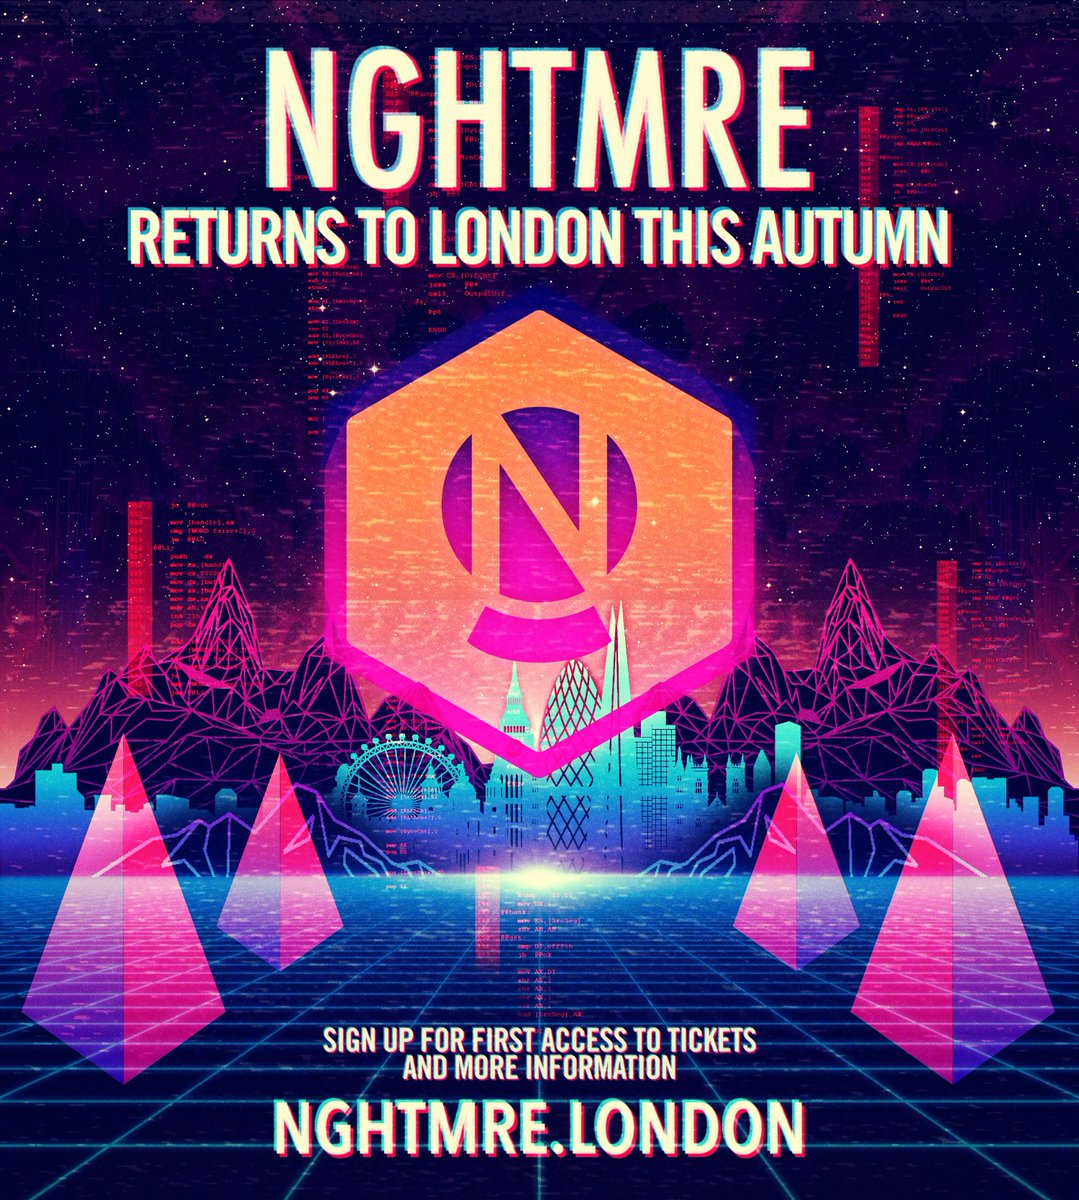 NGHTMRE on Twitter: